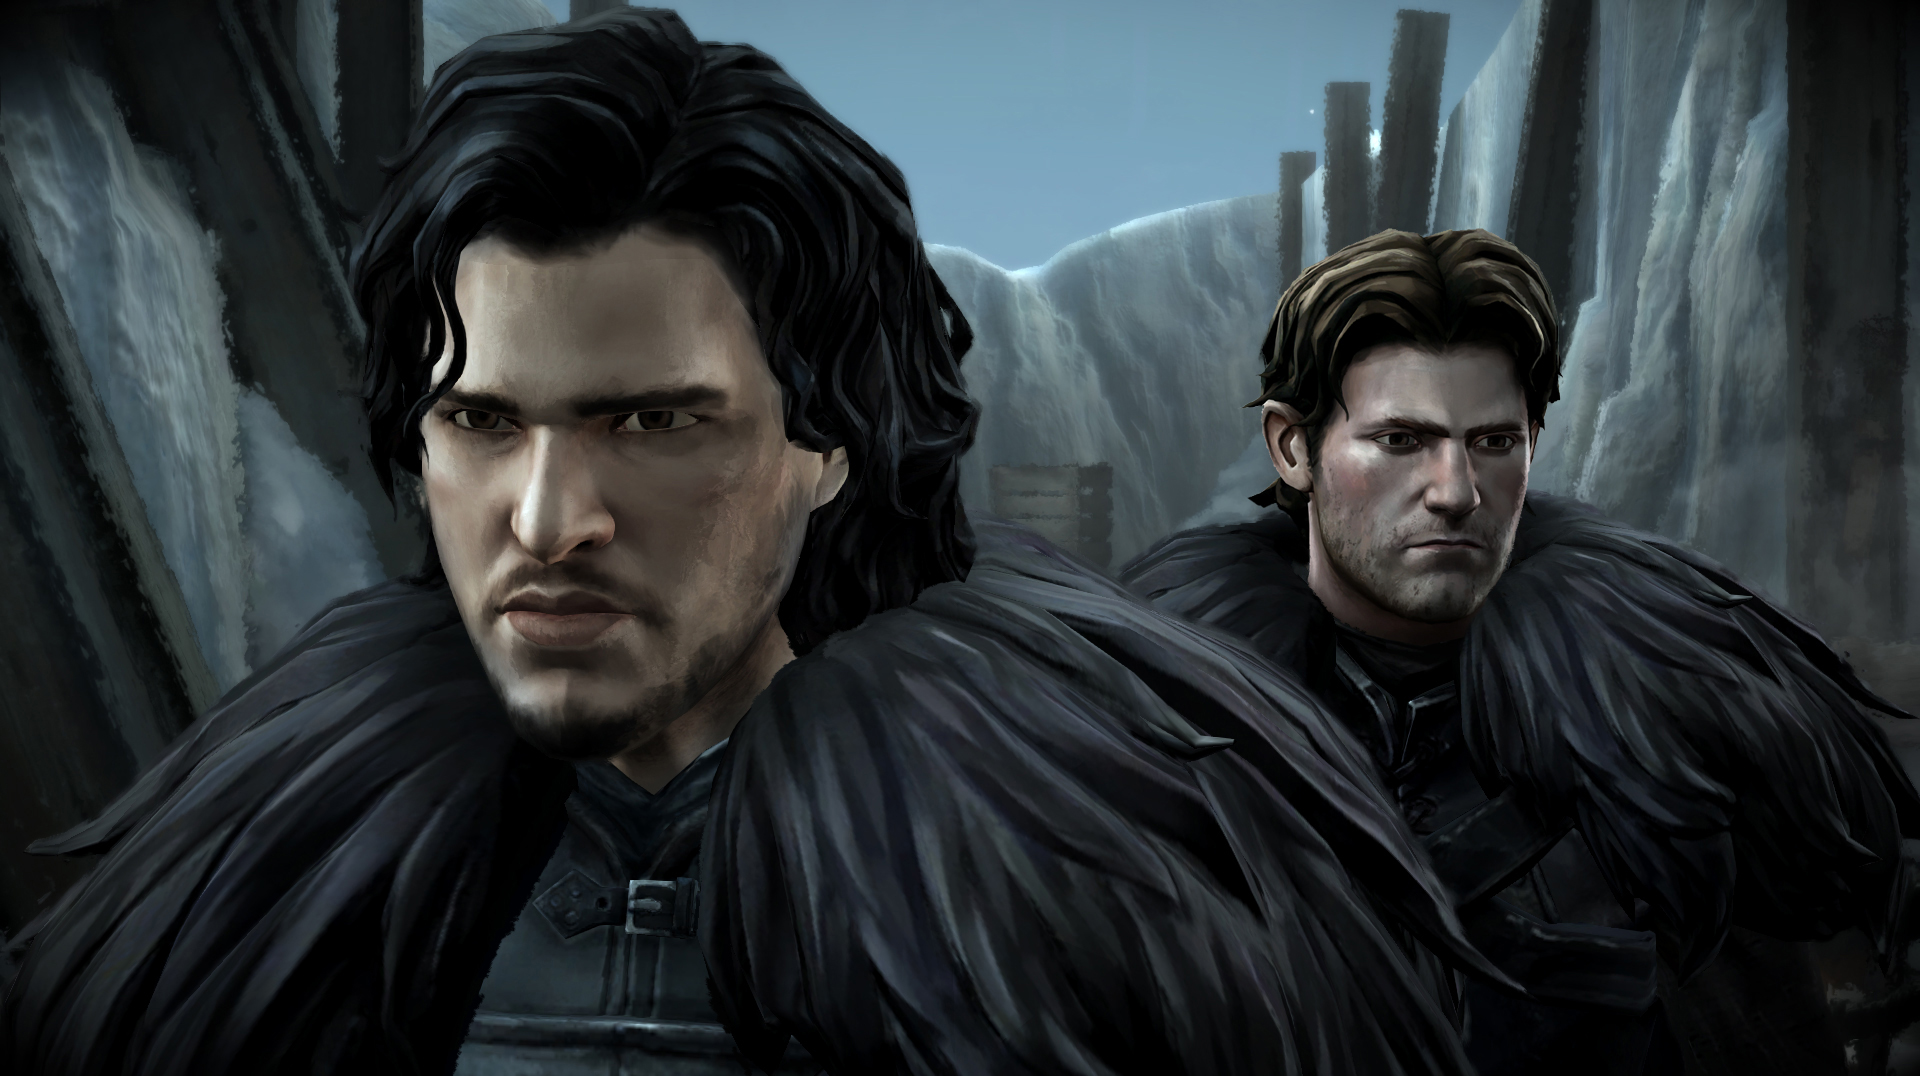 Every Game of Thrones game you can play on PC